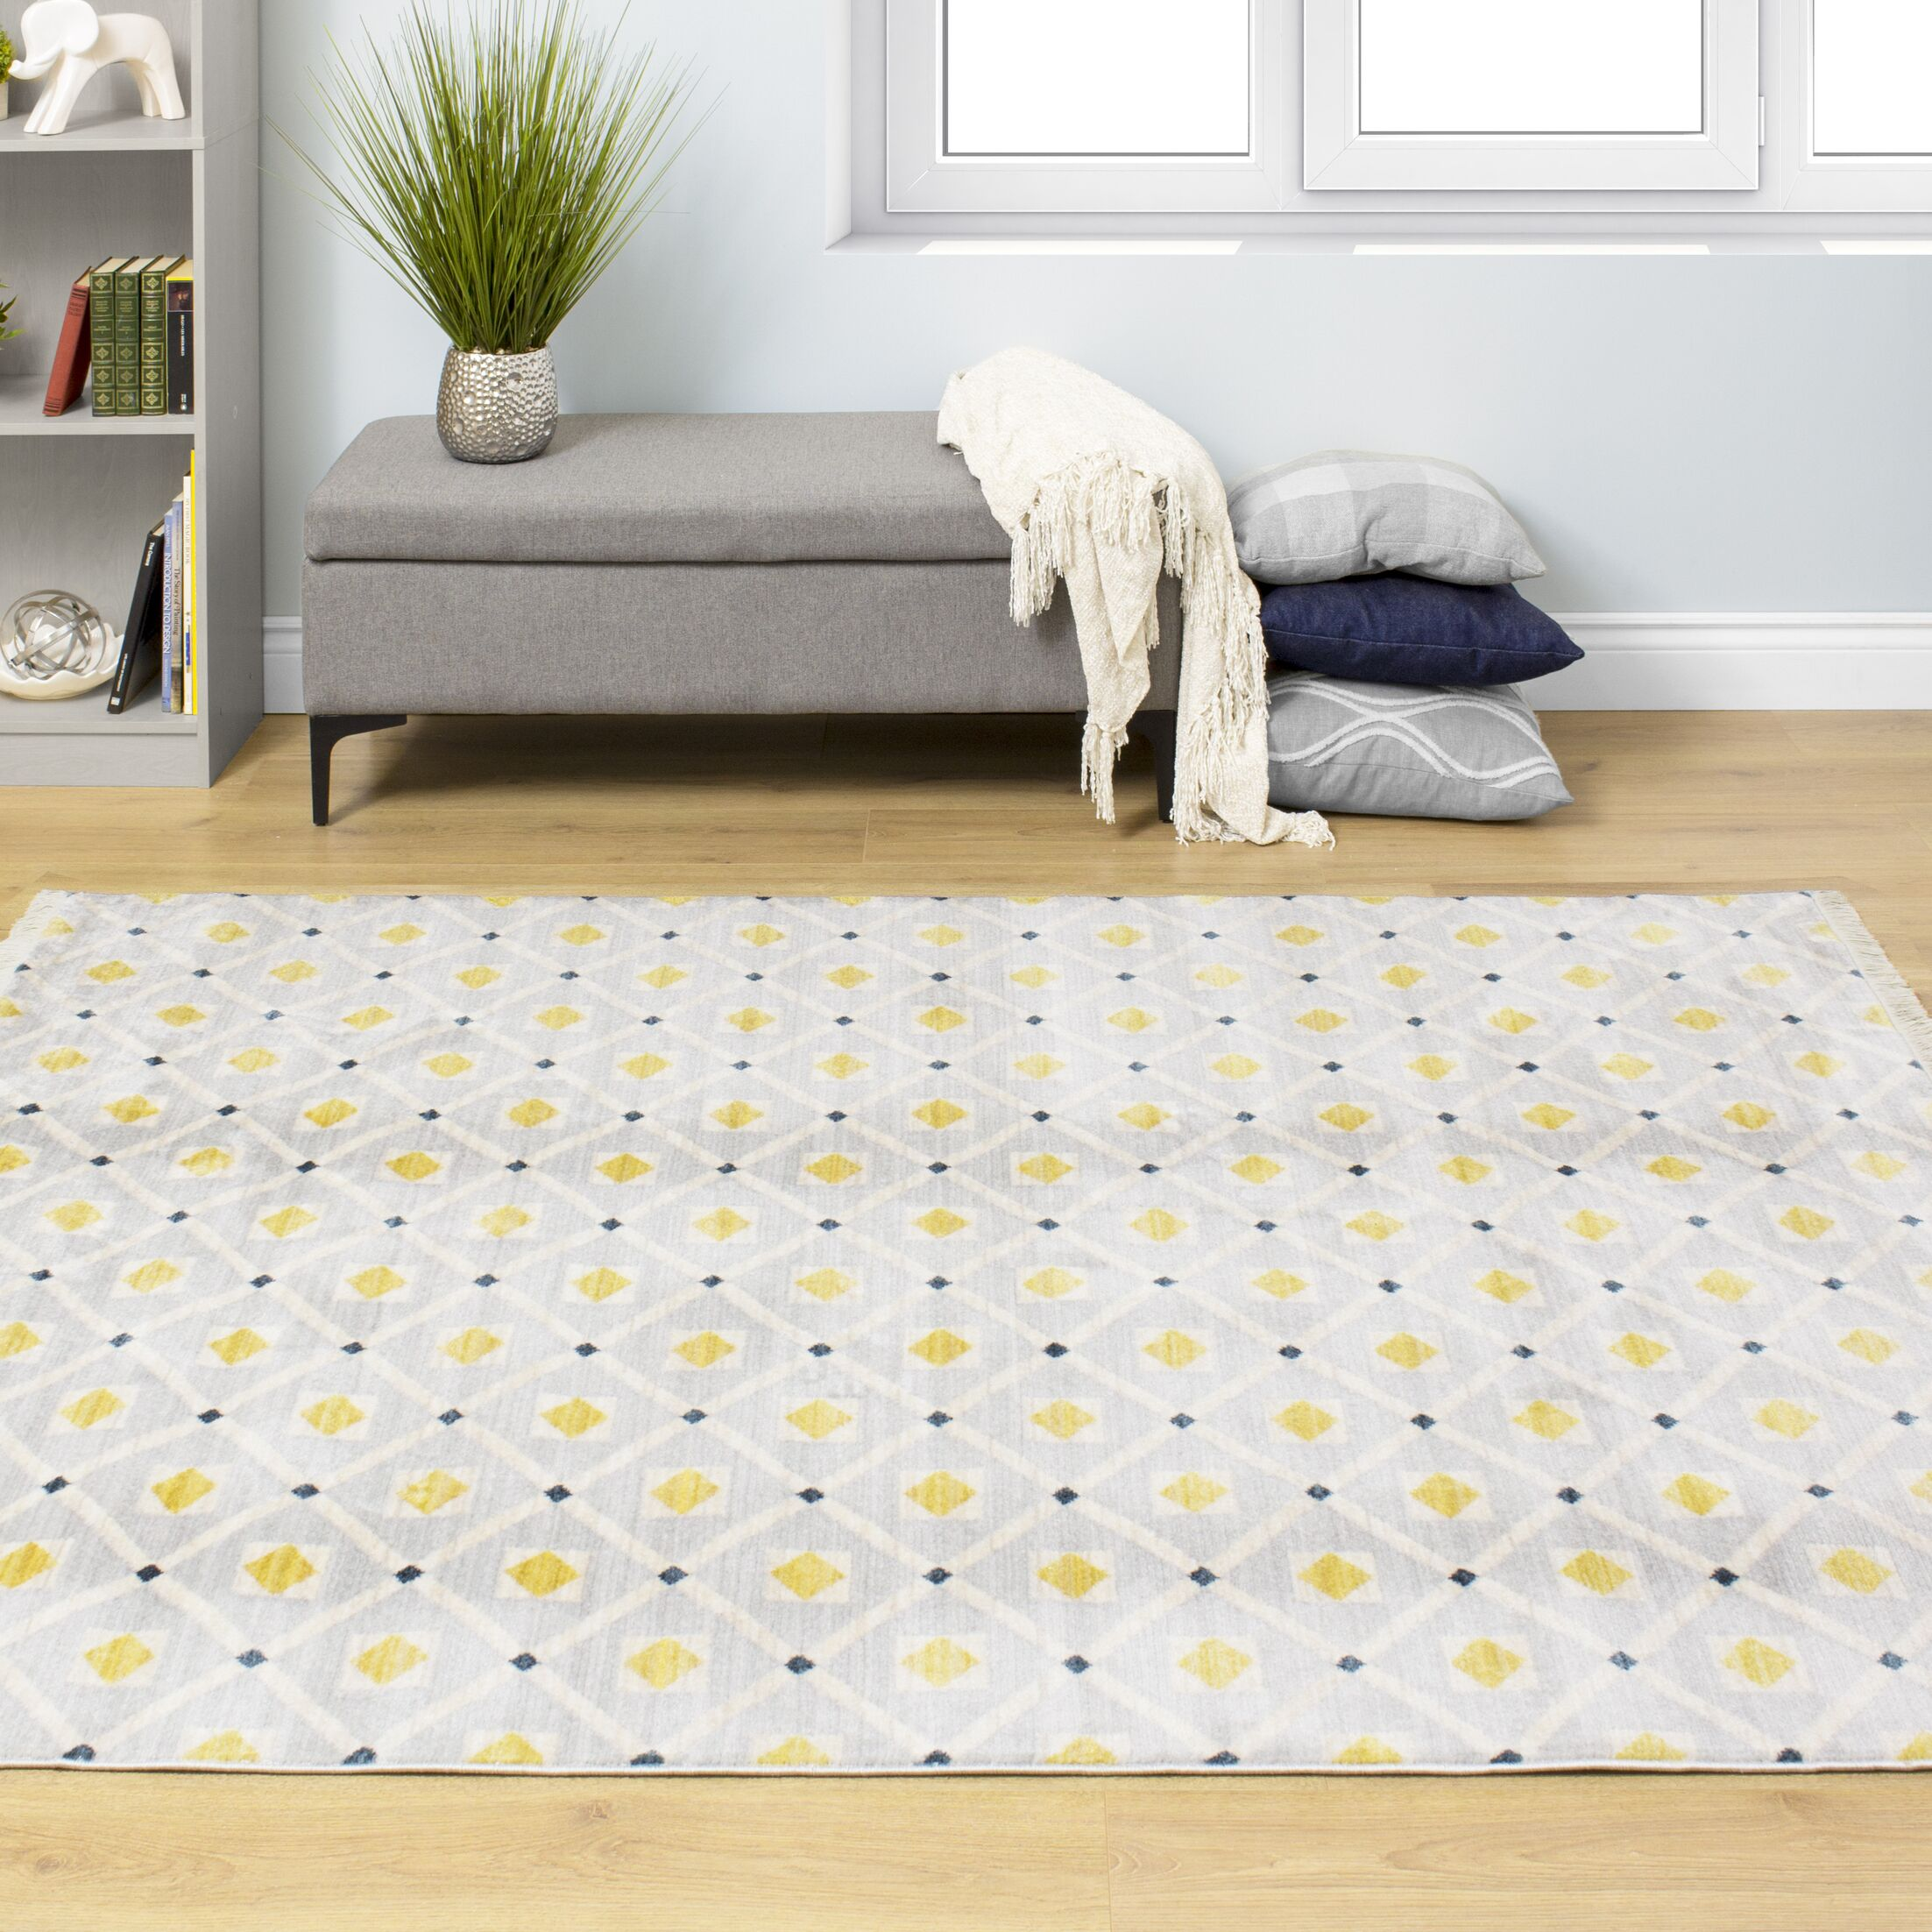 Zephyrine Dotted Trellis Gray/Yellow Area Rug Rug Size: Rectangle 5'3'' x 7'3''